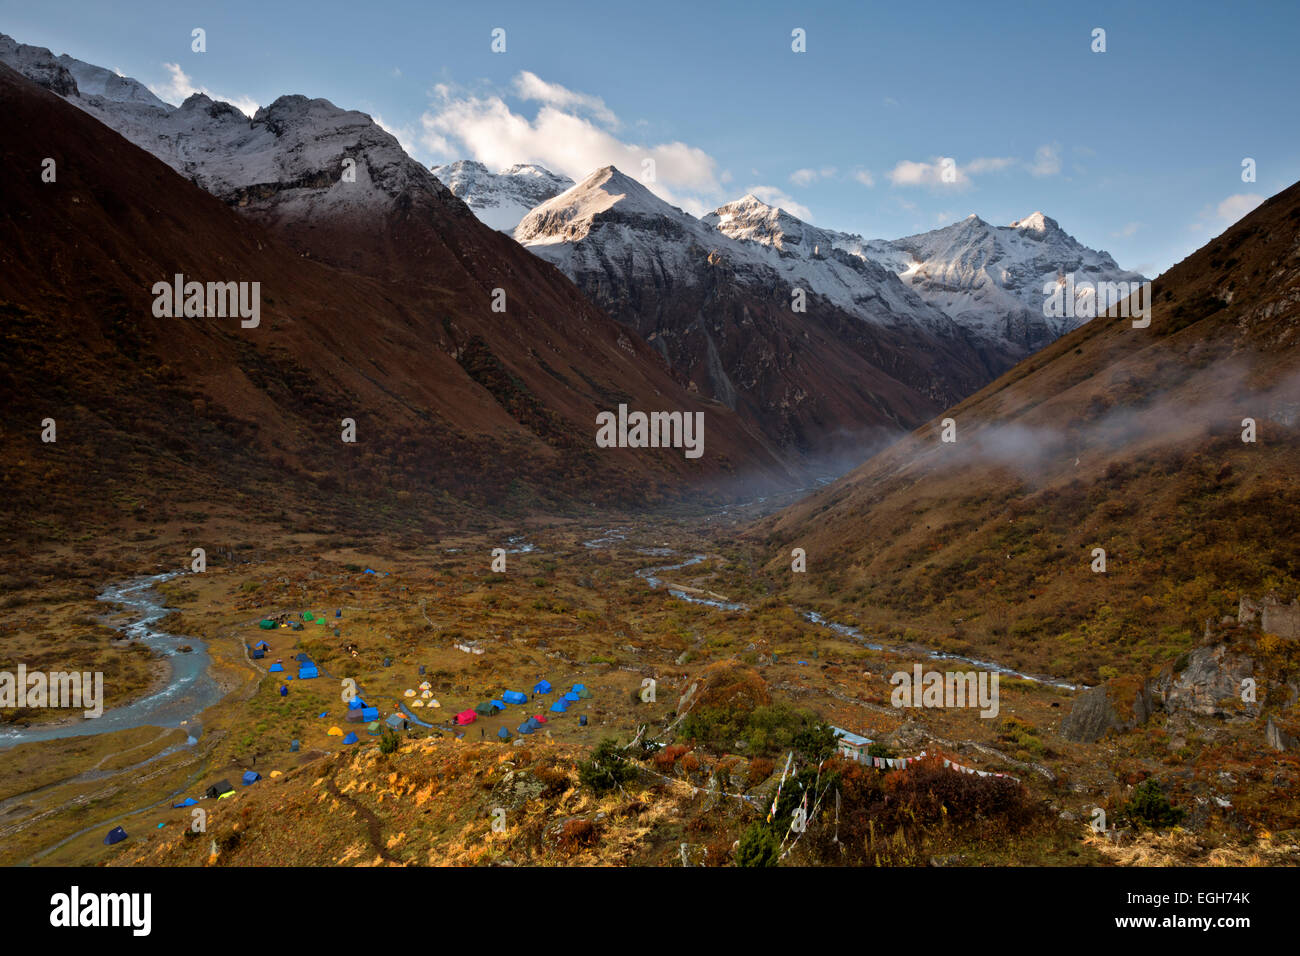 BU00210-00...BHUTAN - Early morning view south over the upper Paro River Valley from overlook above the Jangothang - Stock Image